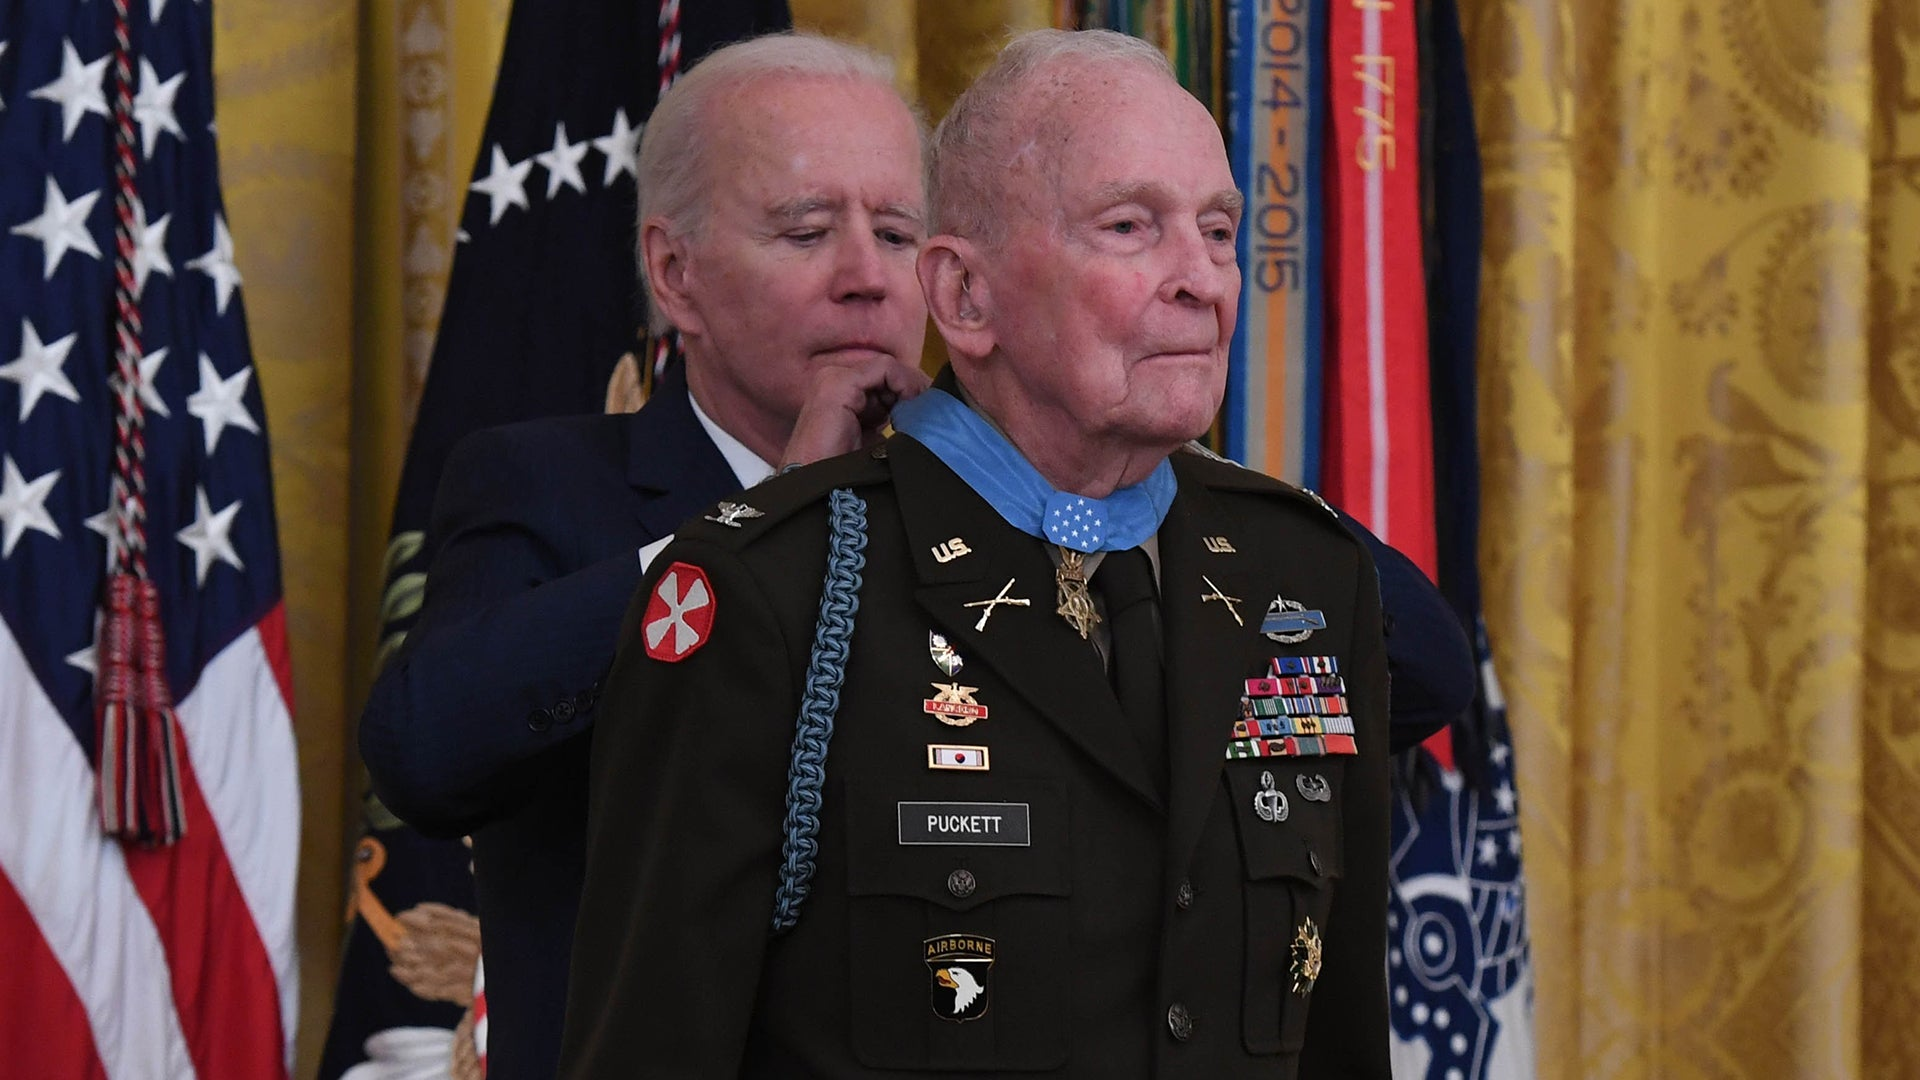 America's newest Medal of Honor recipient: 'Our greatest enemy is ourselves'